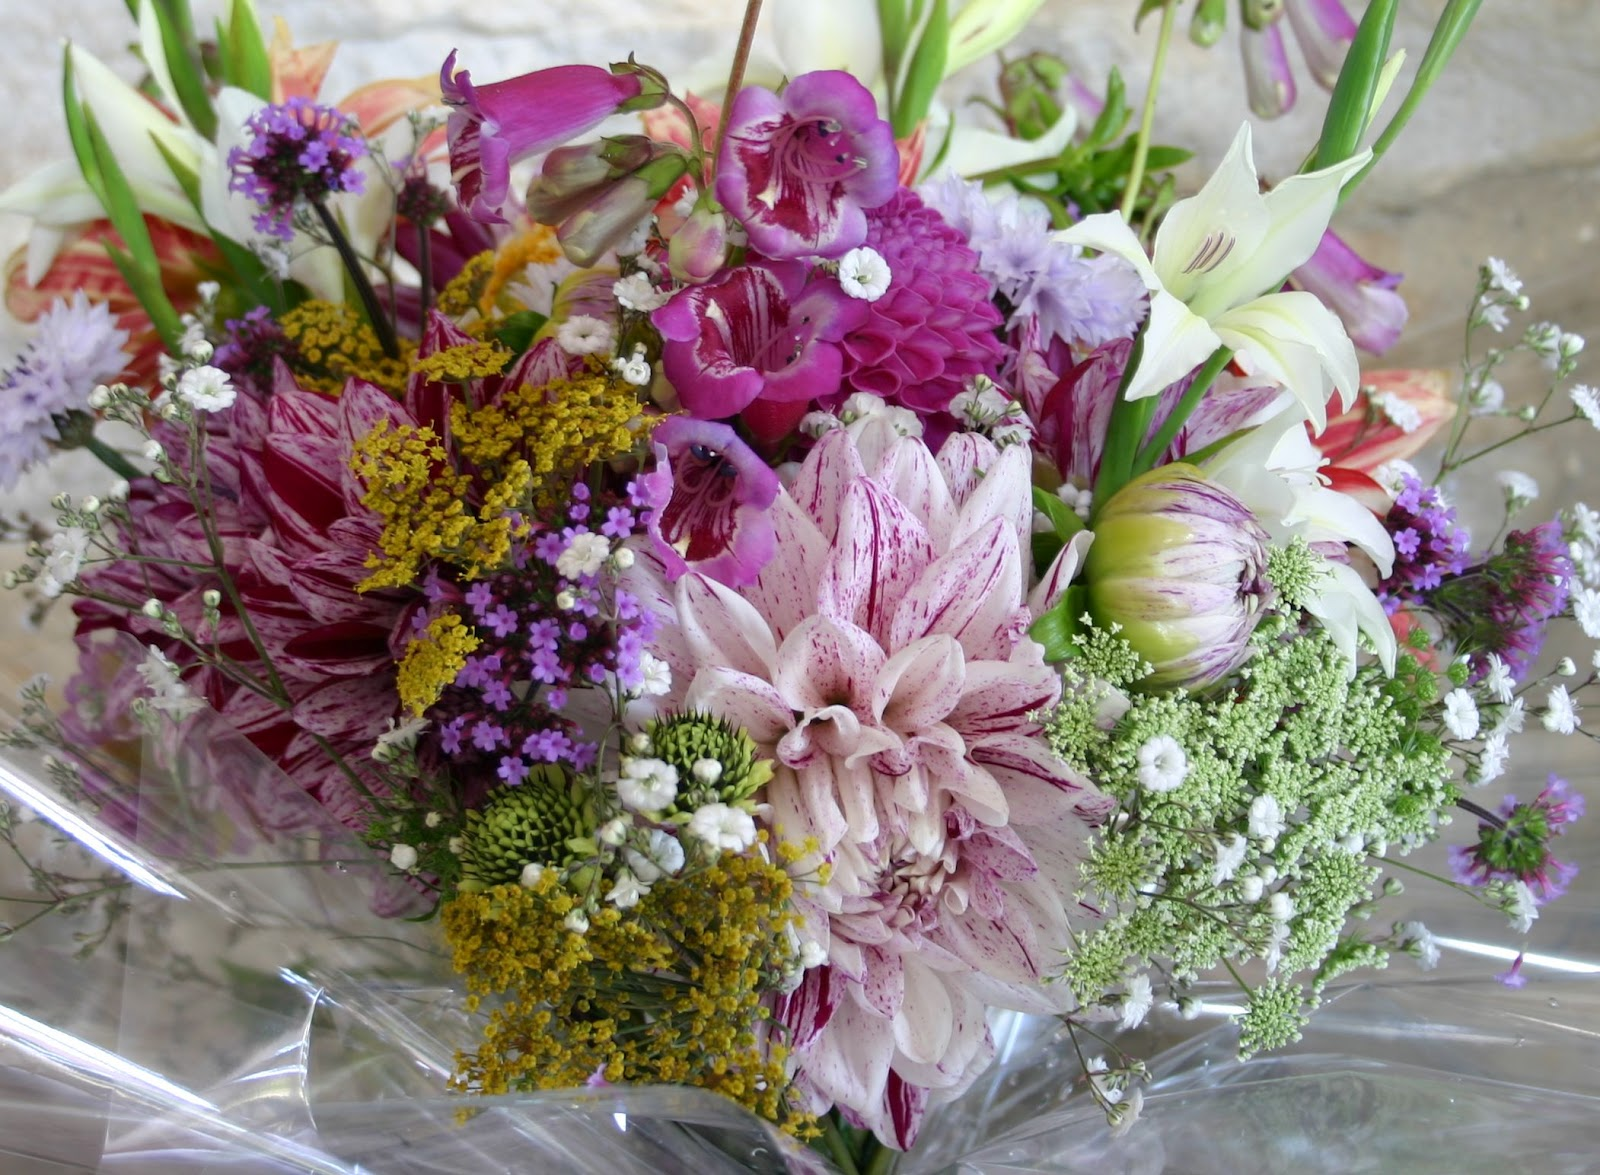 Treats in store what will you choose common farm flowers a typical common farm flowers bouquet izmirmasajfo